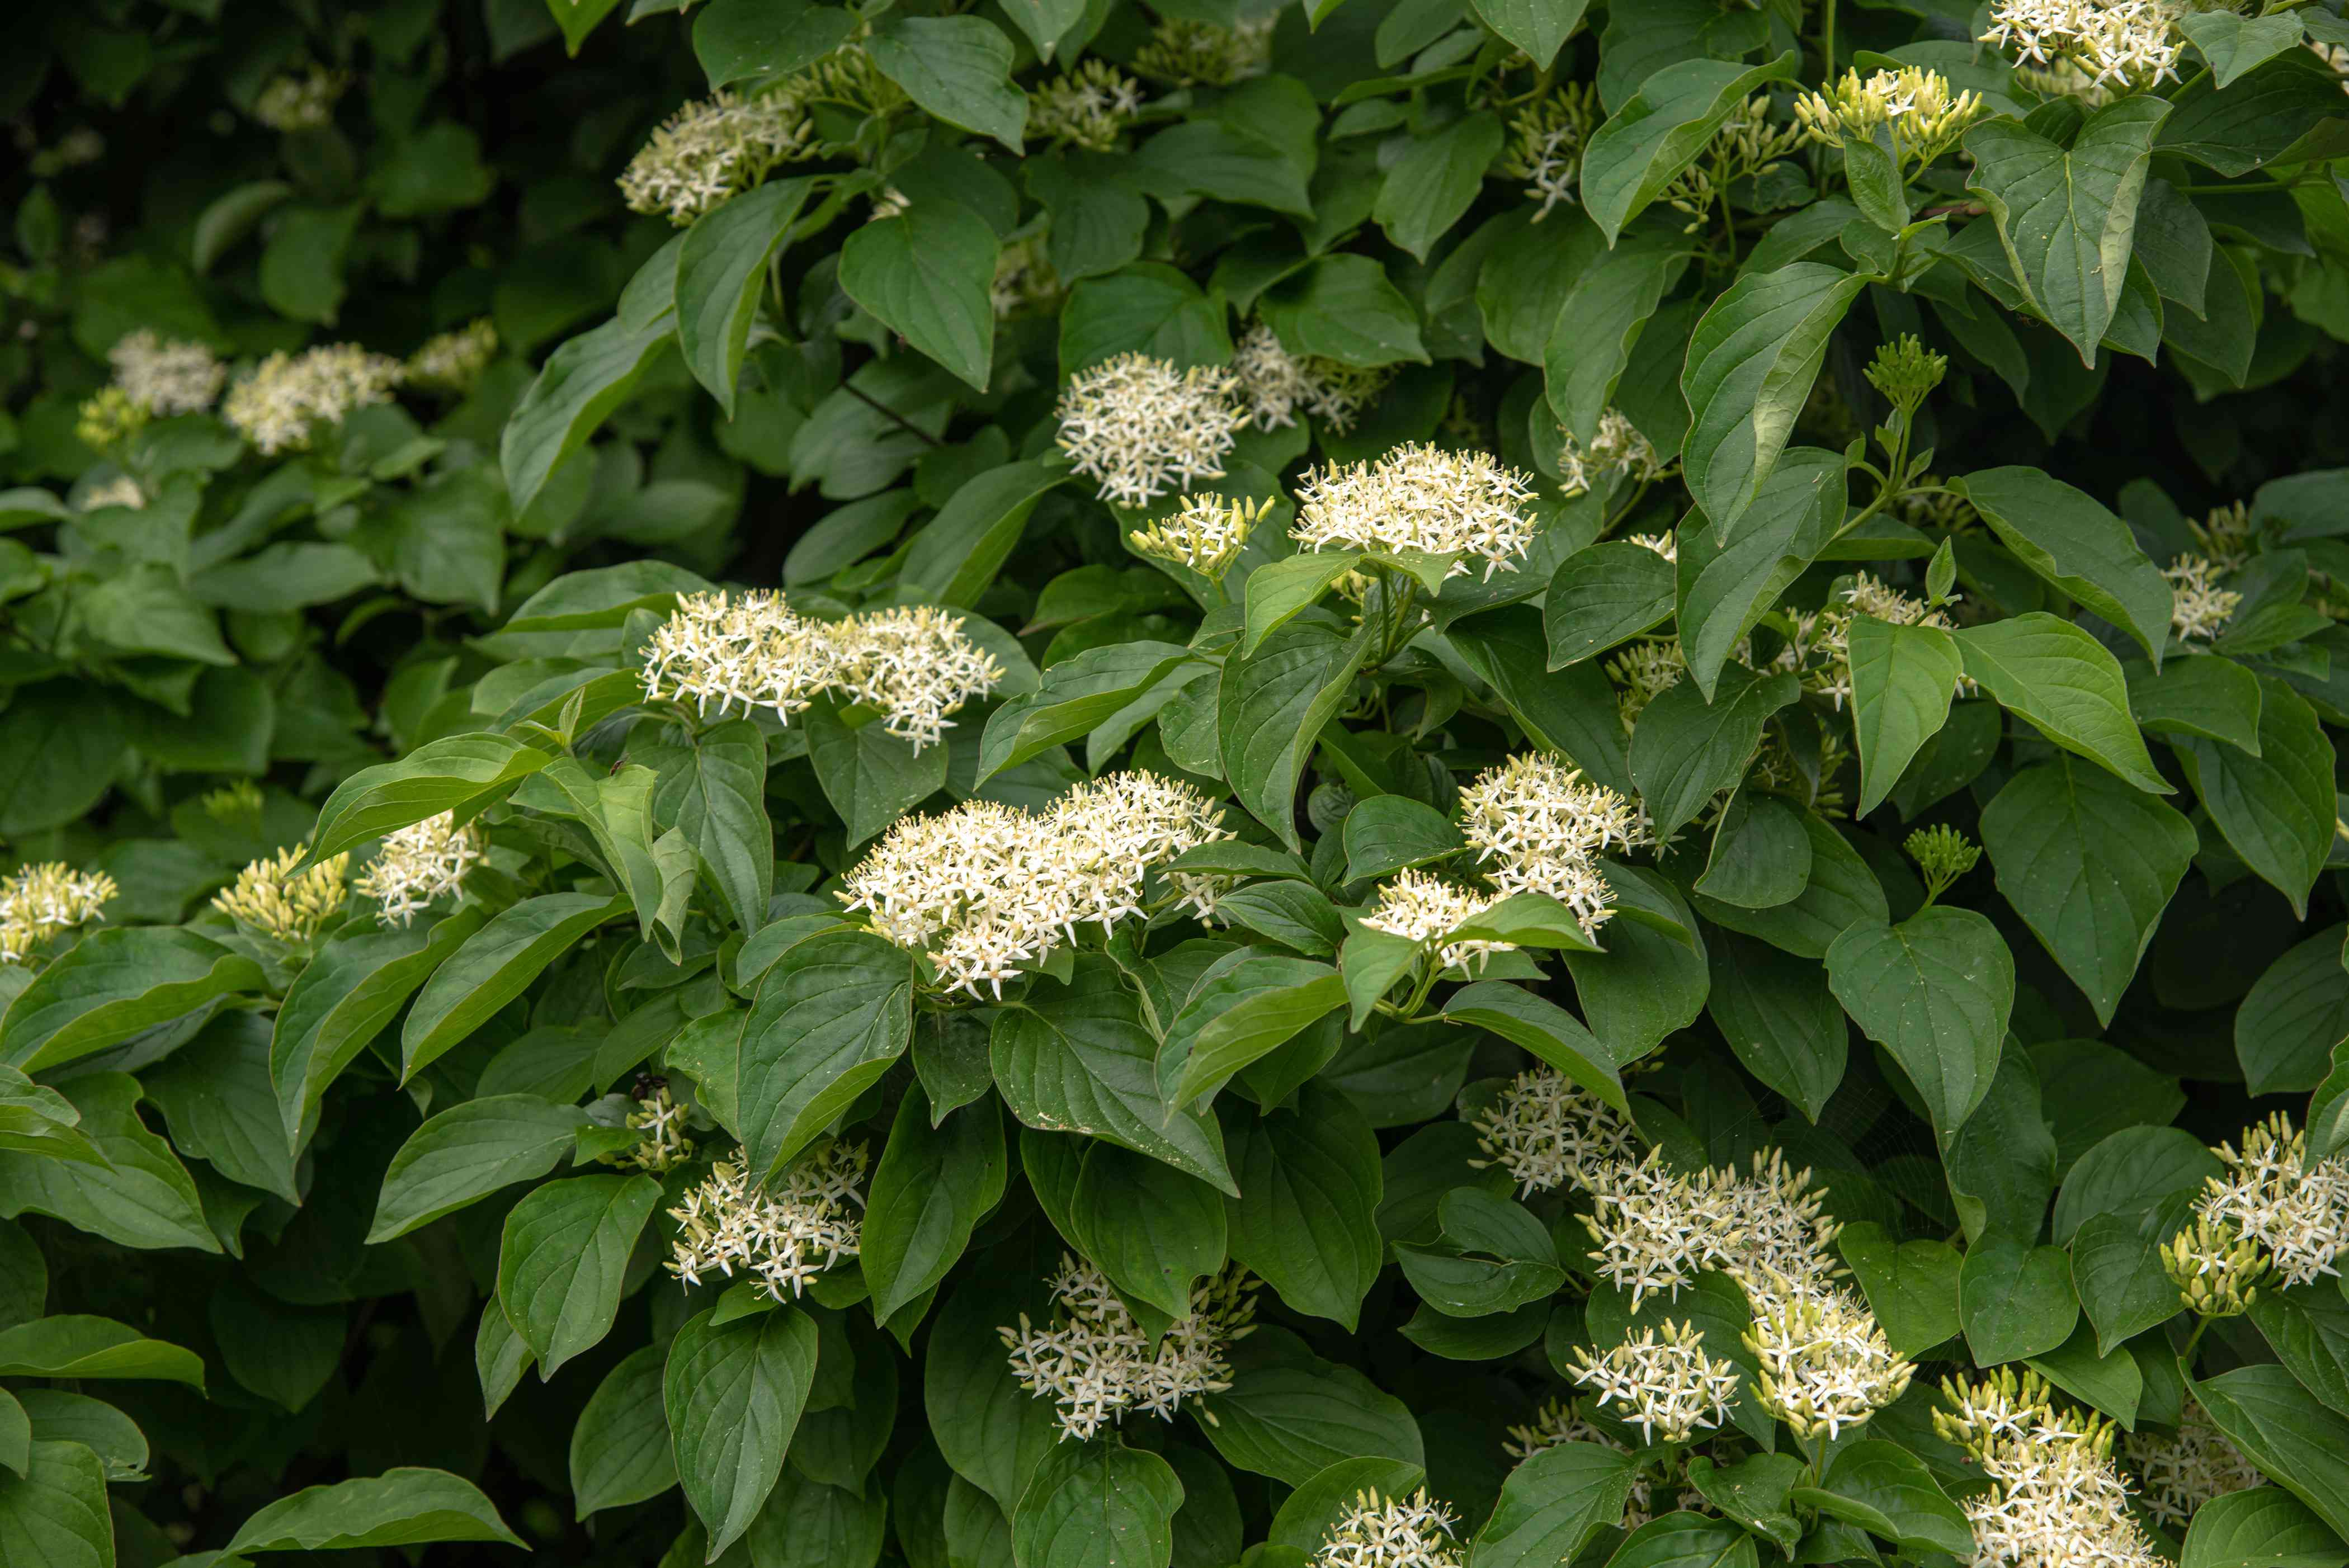 Silky dogwood shrub with small white flower clusters surrounded by large leaves